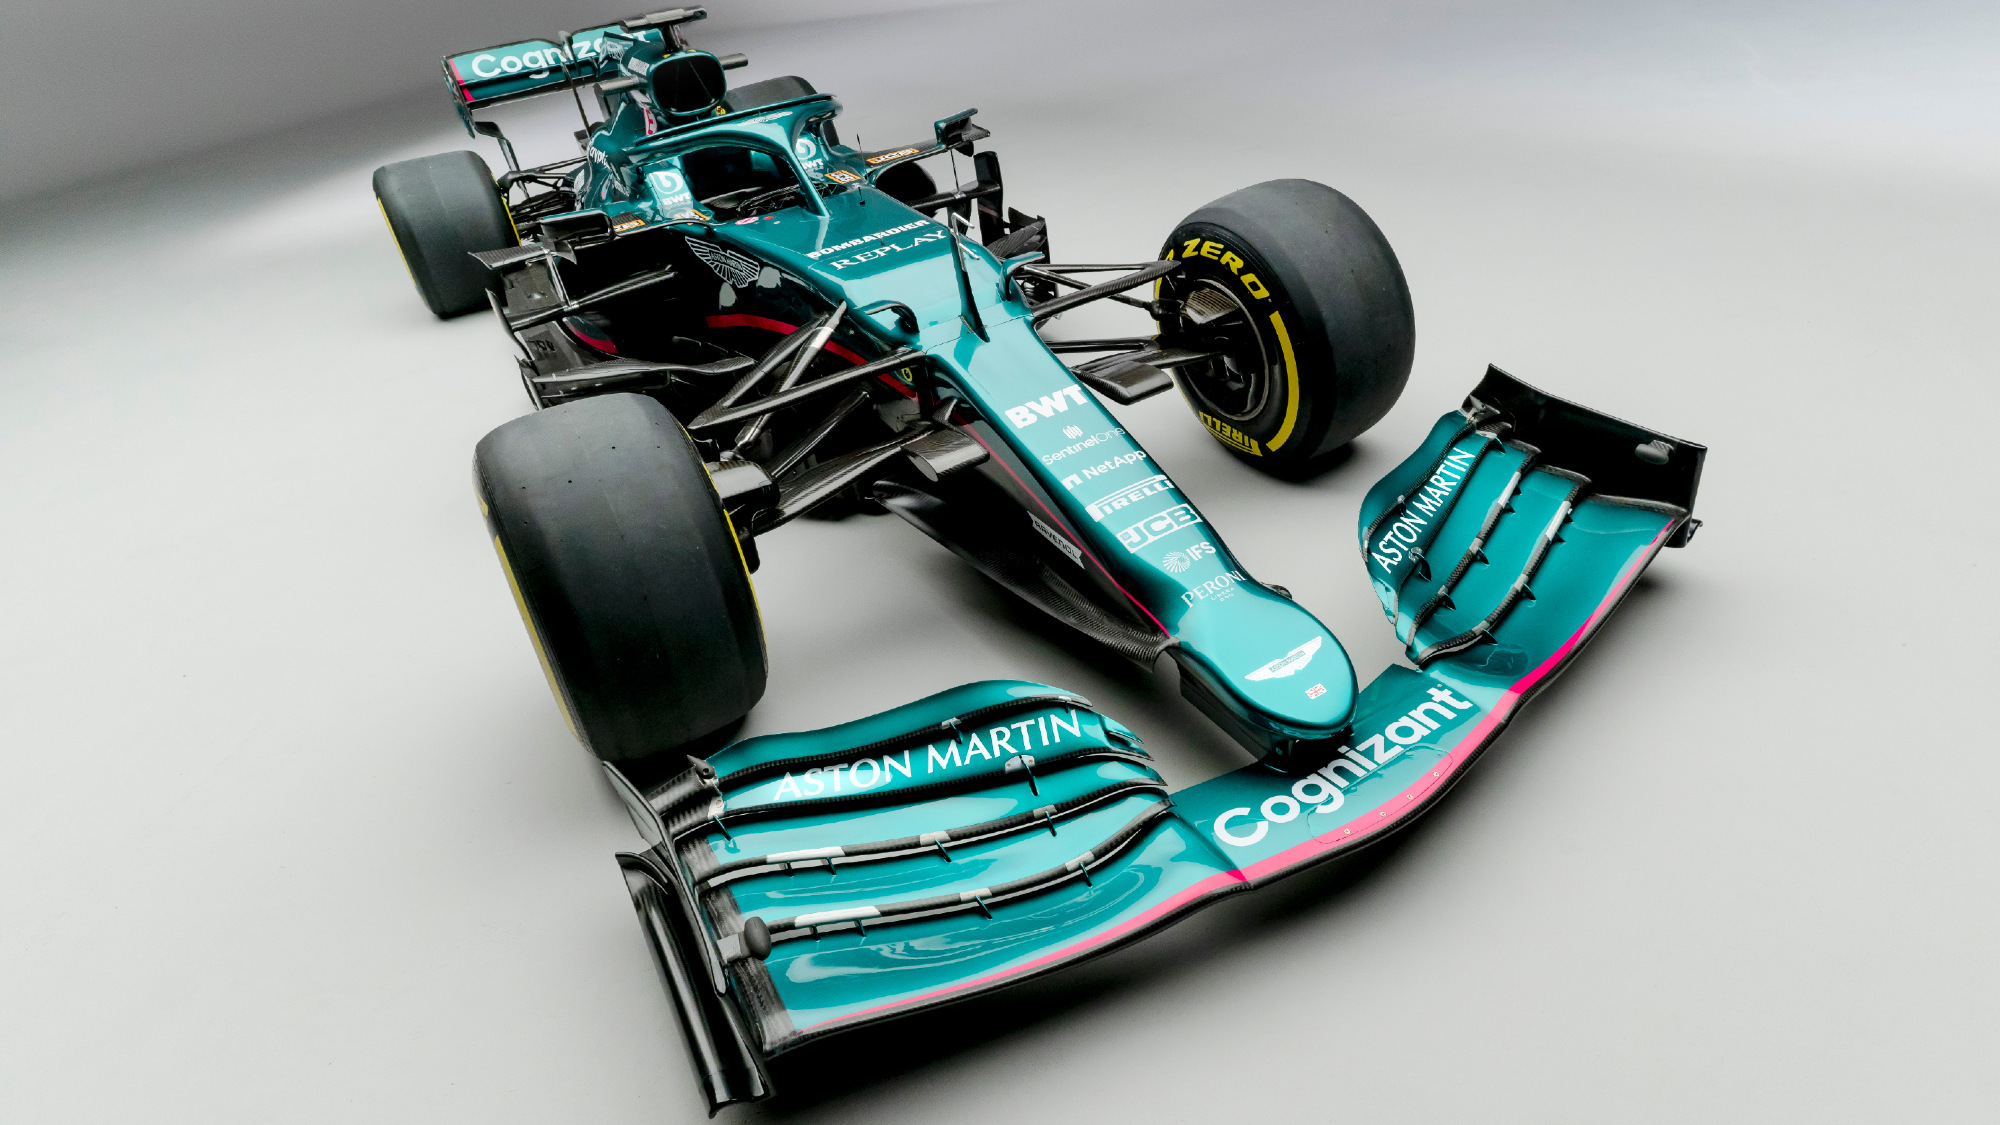 2021 Aston Martin F1 launch – see the new car revealed here